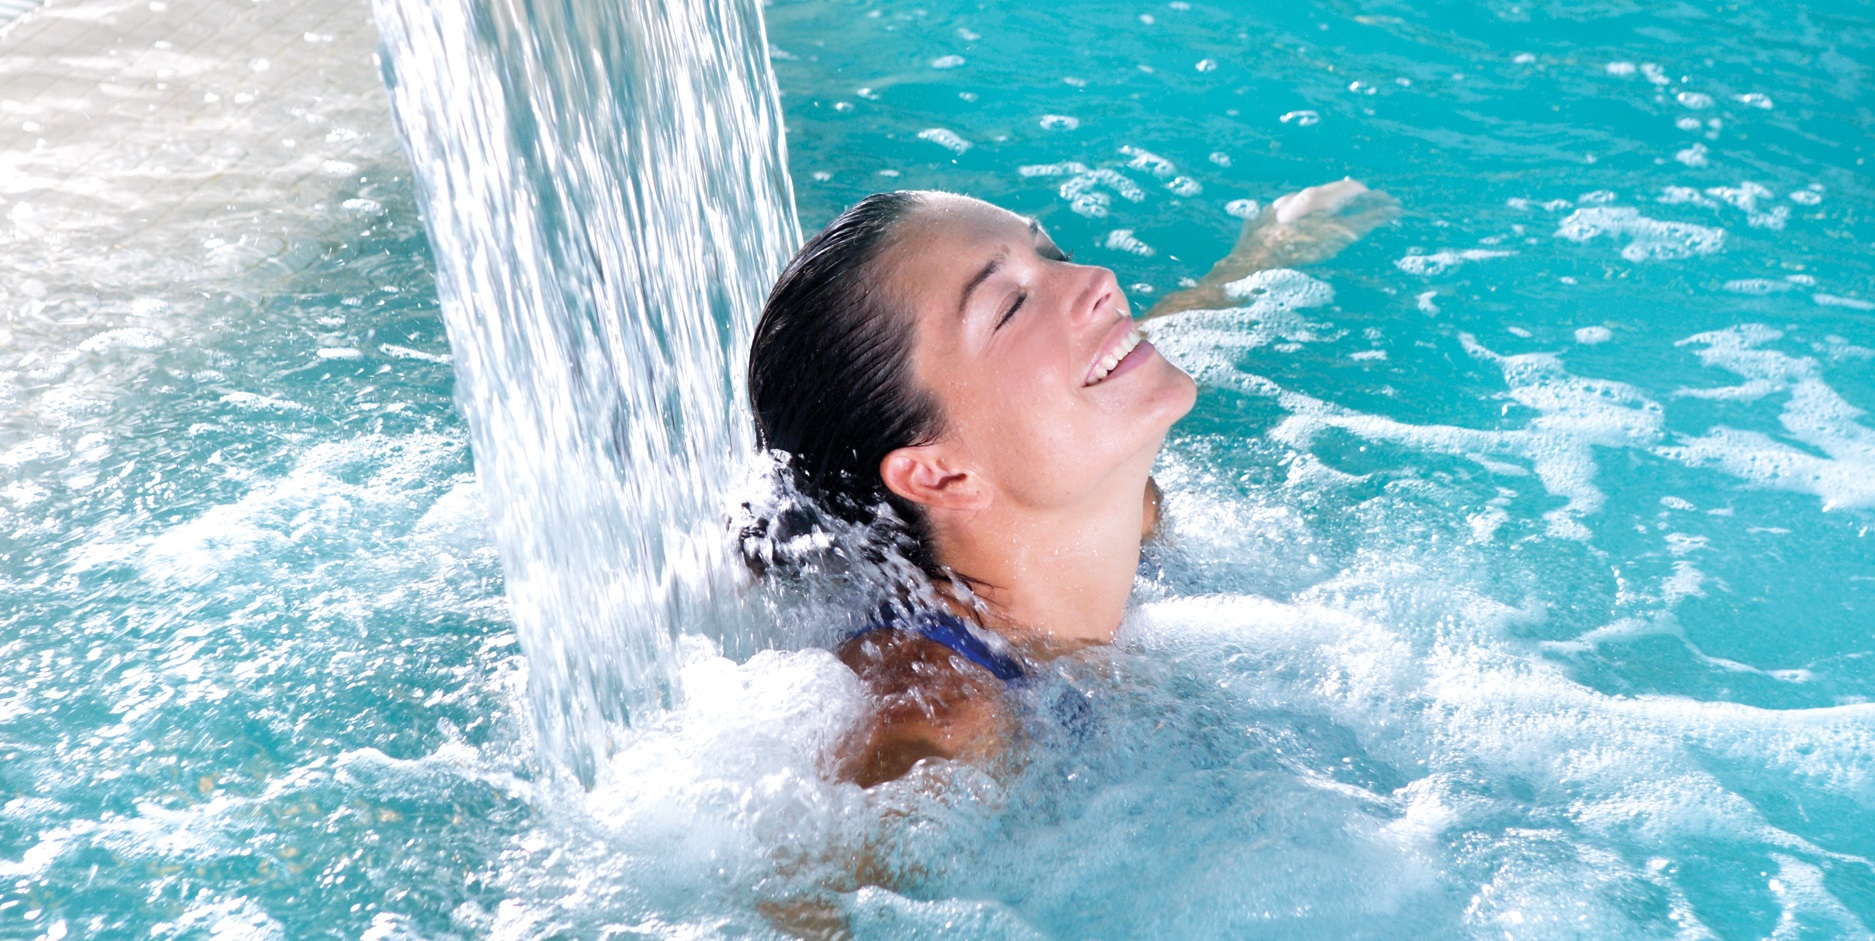 water-wellness-randersjpg - Water & Wellness Randers / VisitRanders